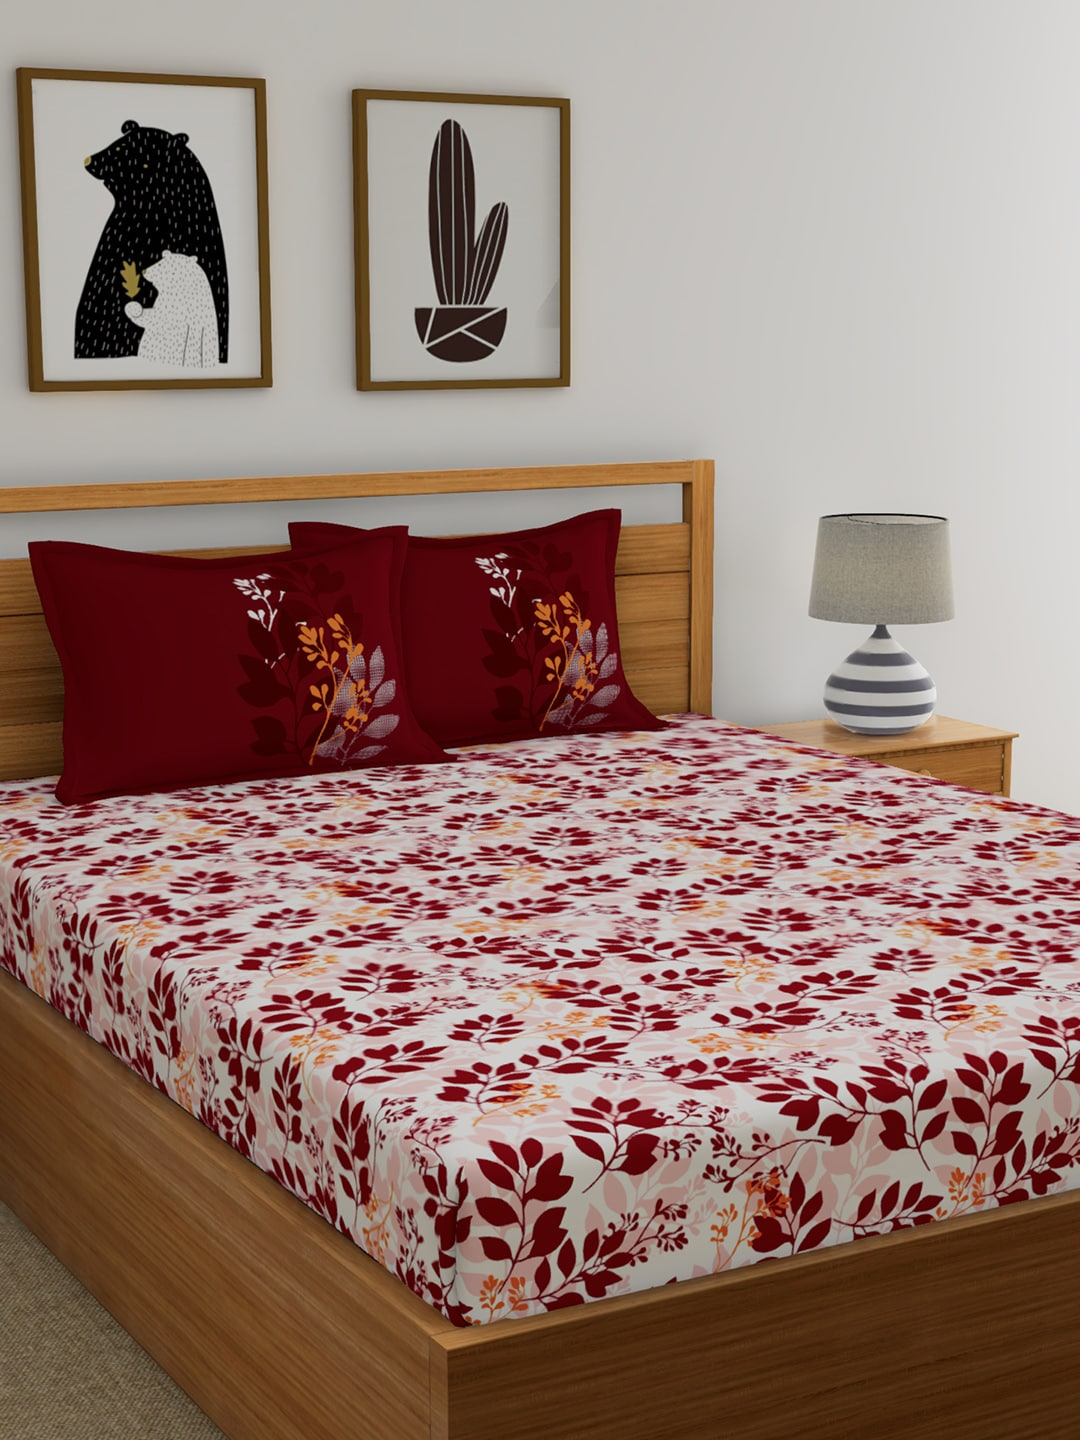 056ece0a9 Double Bed Sheets - Buy Single Bedsheets Online in India